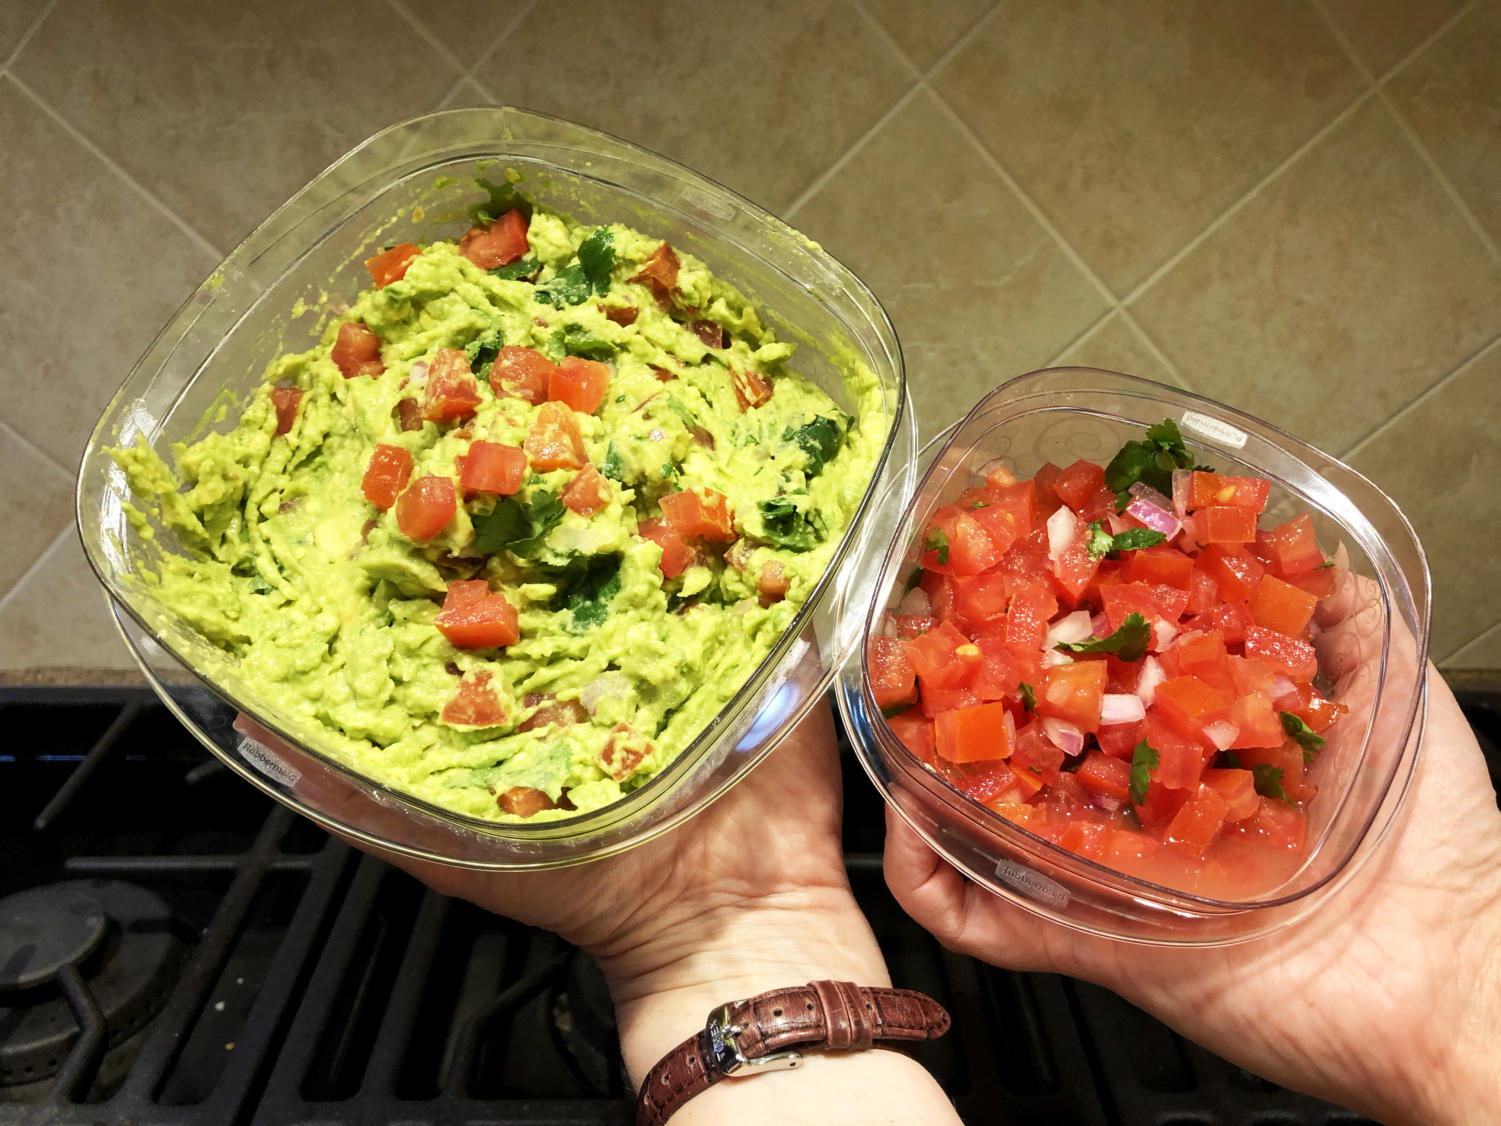 Featured are a bowl of fresh guacamole and pico de gallo with refreshing ingredients like lime juice and cilantro.